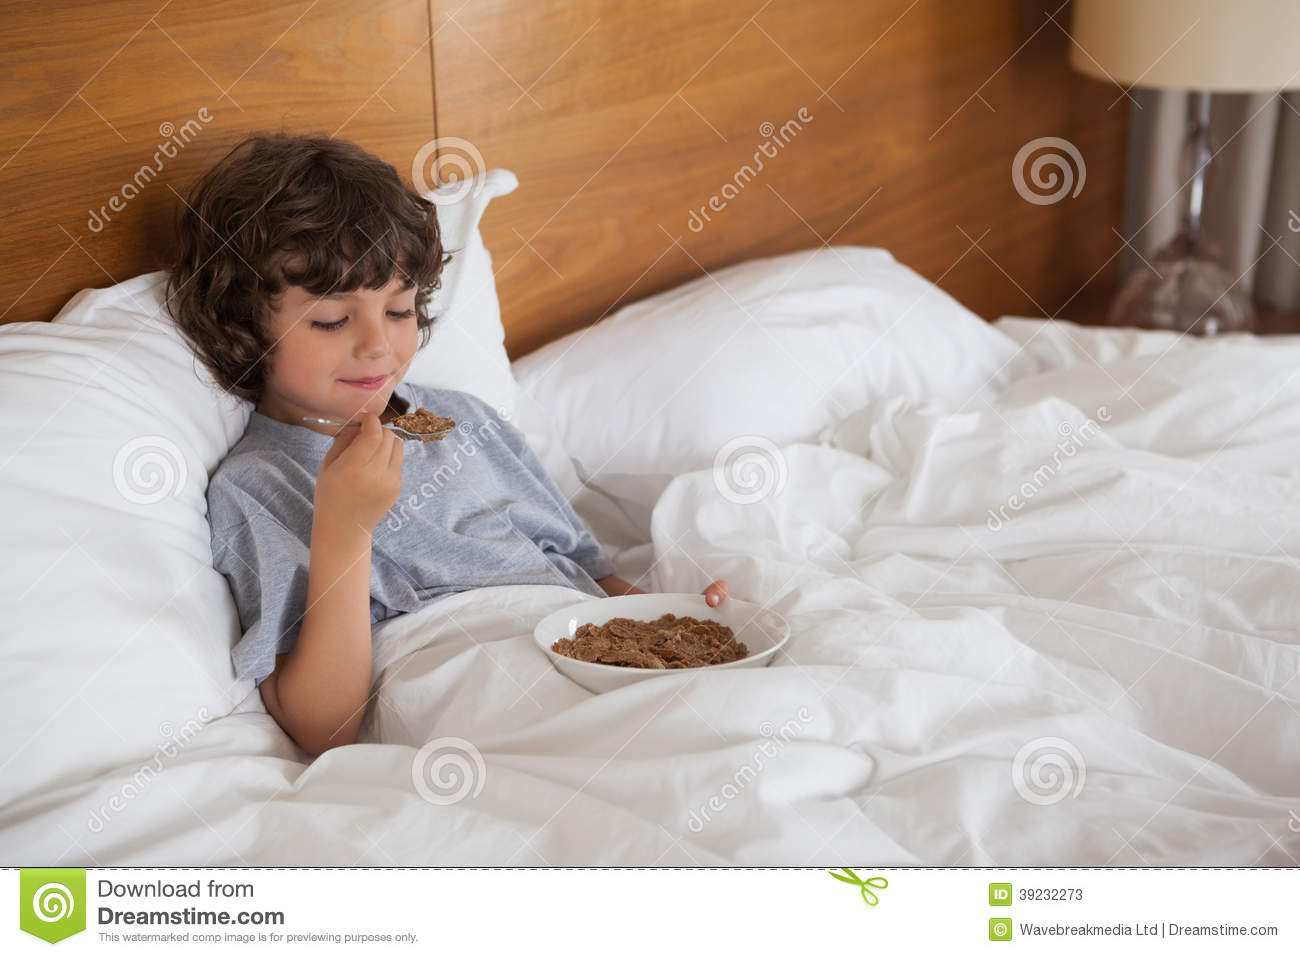 Young Boy Eating Breakfast In Bed Stock Image Image Of Bowl Brown 39232273